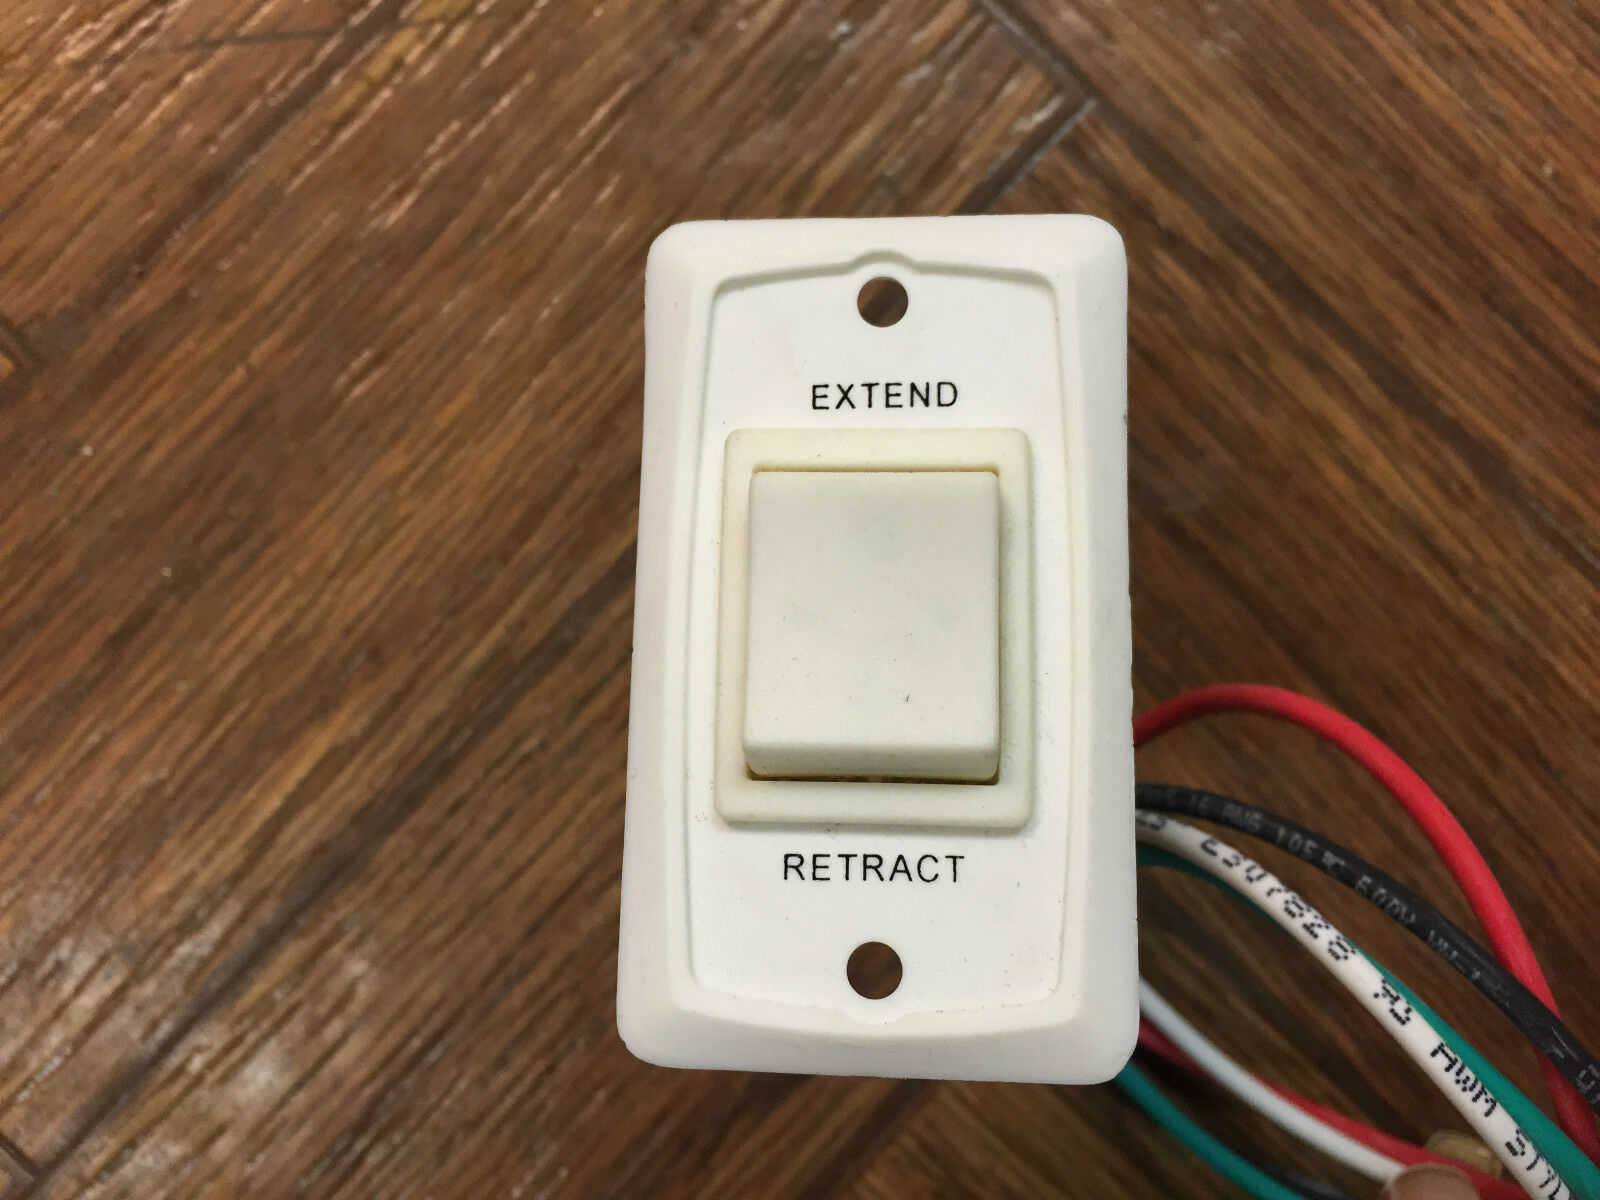 RV CAMPER MOTORHOME TRAILER 12V EXTEND RETRACT AWNING SWITCH WIRE HARNESS